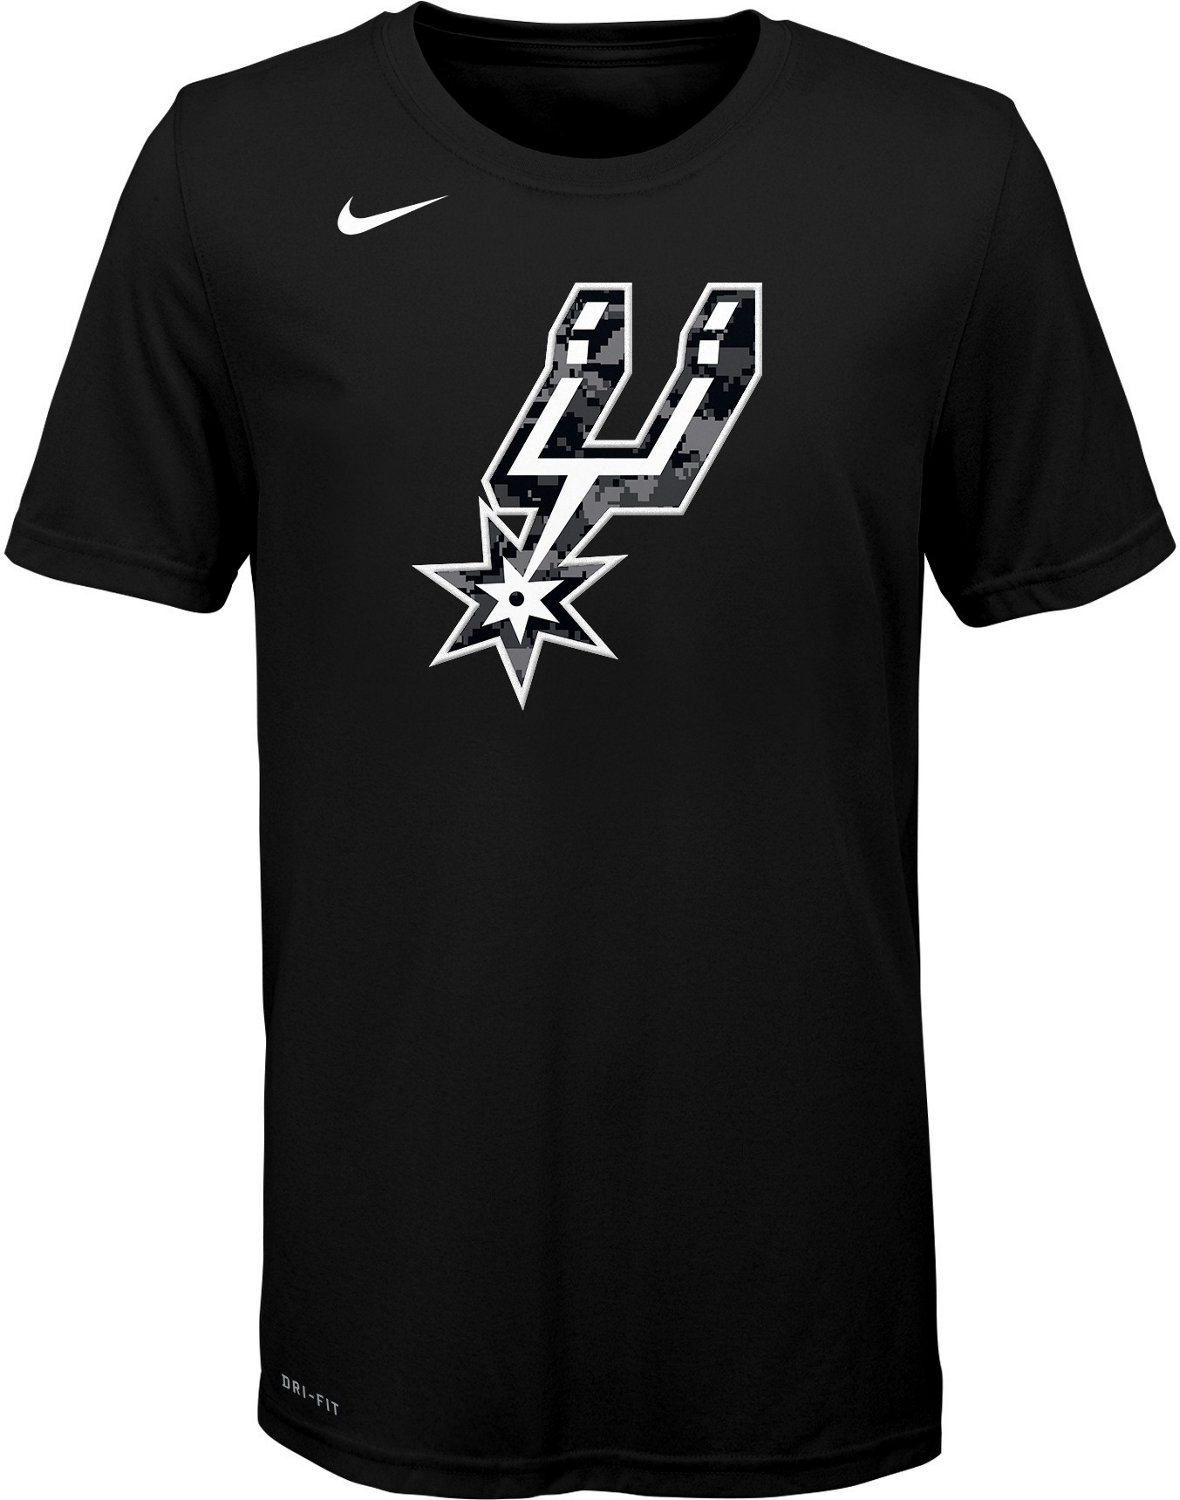 51d7609a3d839 Display product reviews for Nike Boys' San Antonio Spurs City Edition Logo T -shirt